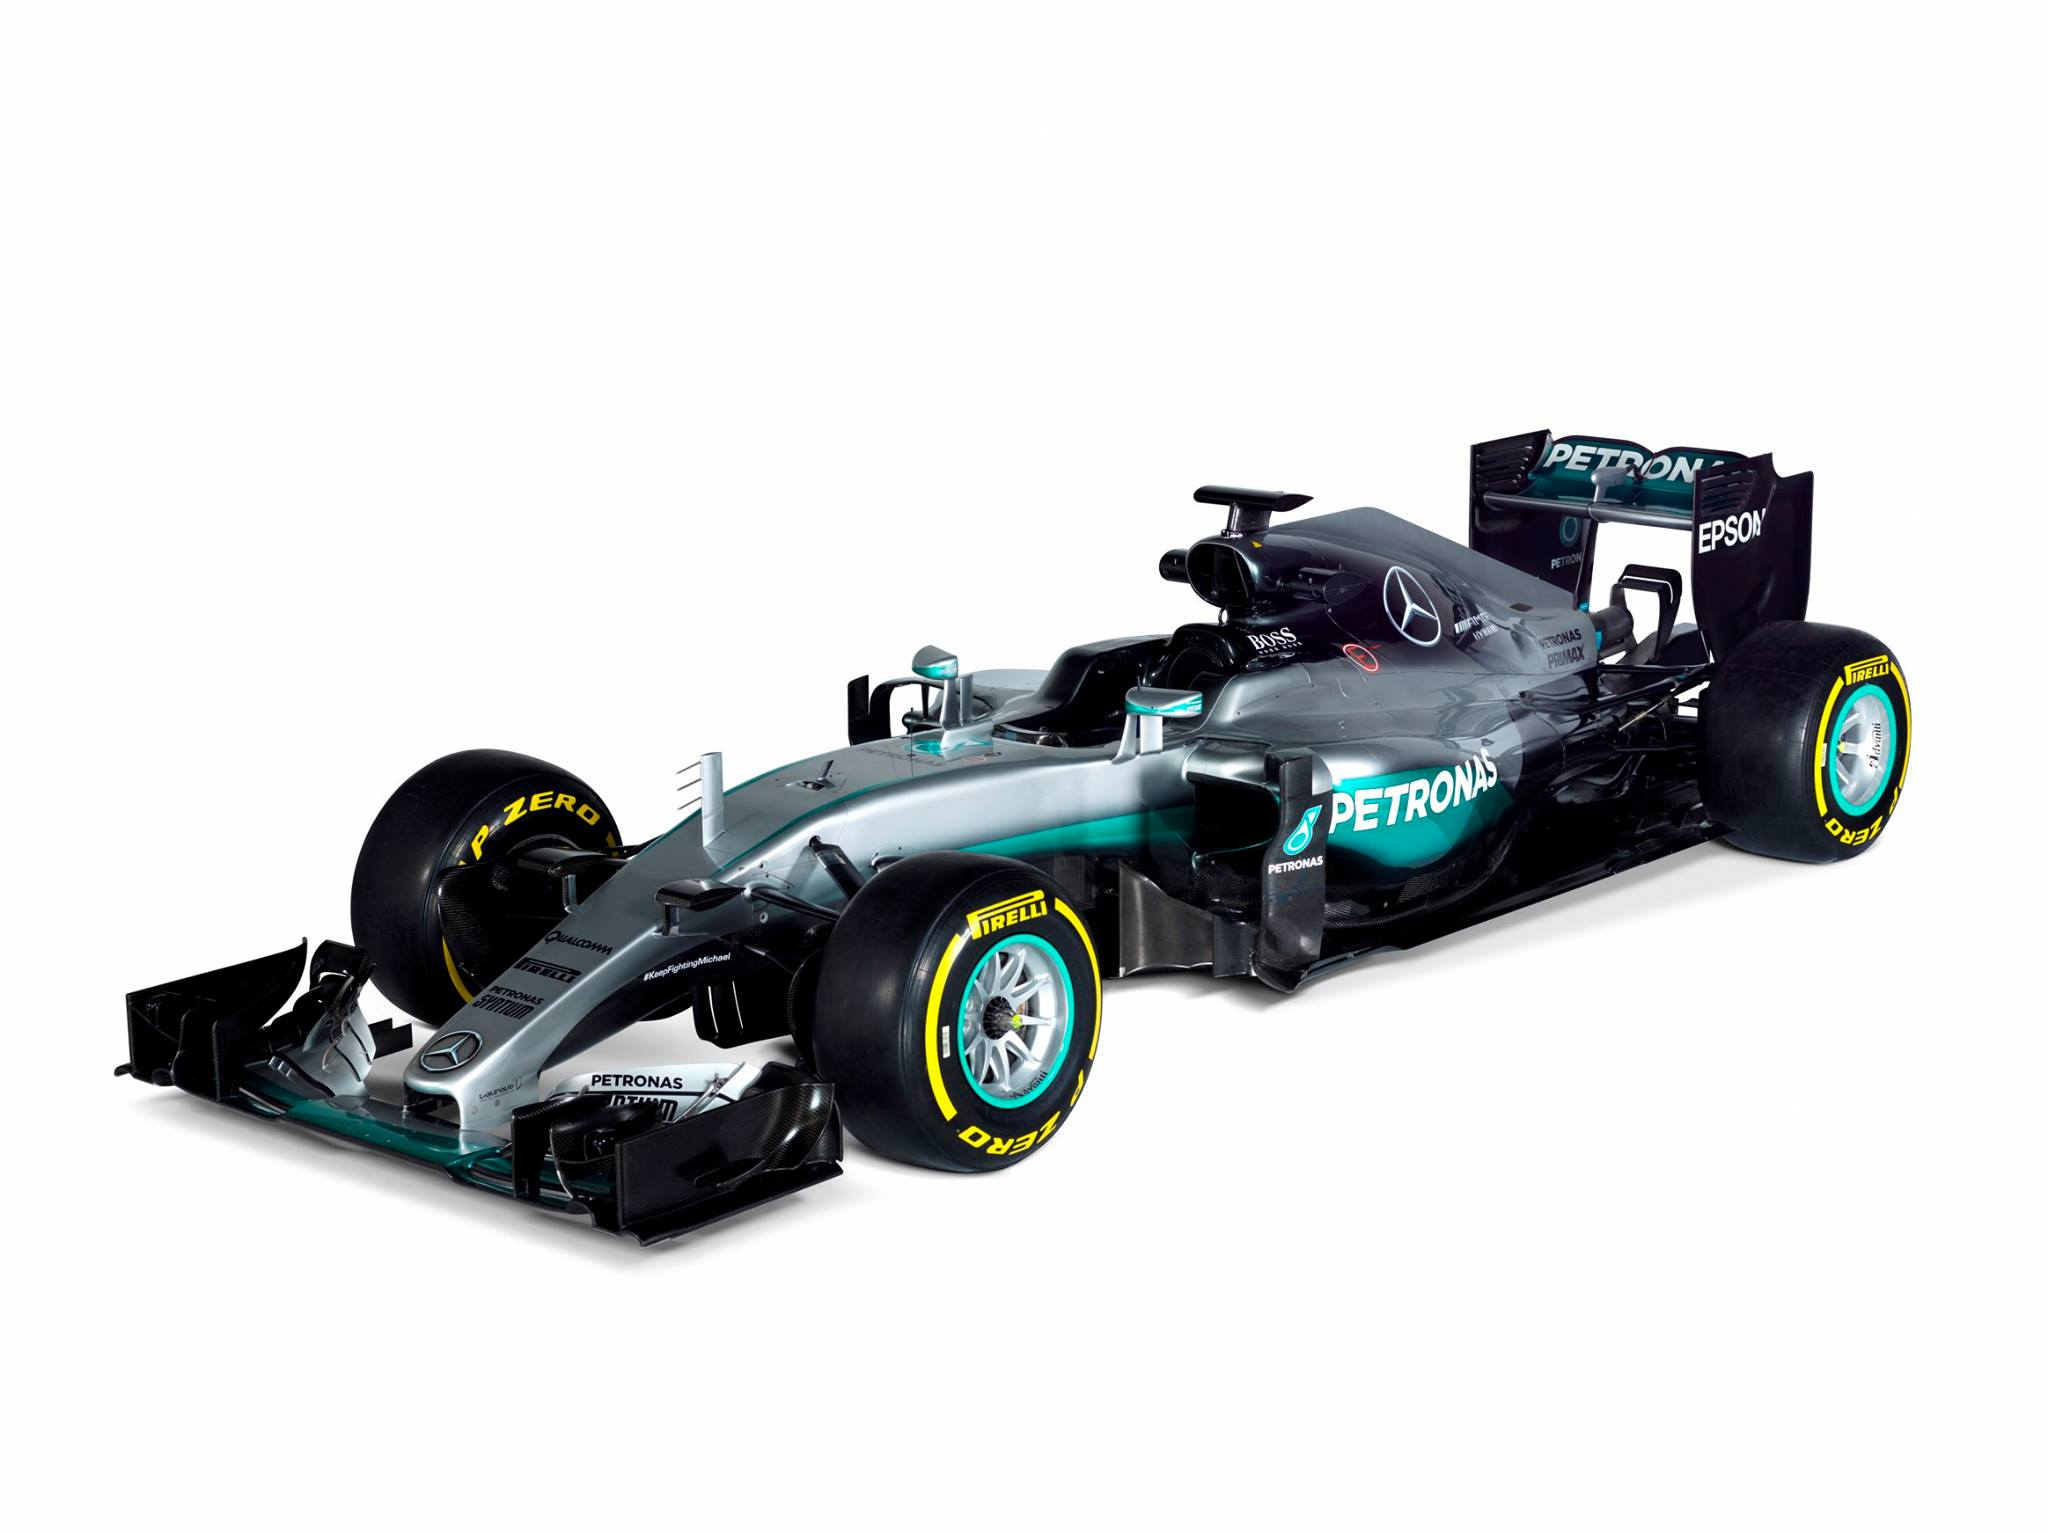 official: 2016 mercedes-amg f1 w07 hybrid - gtspirit